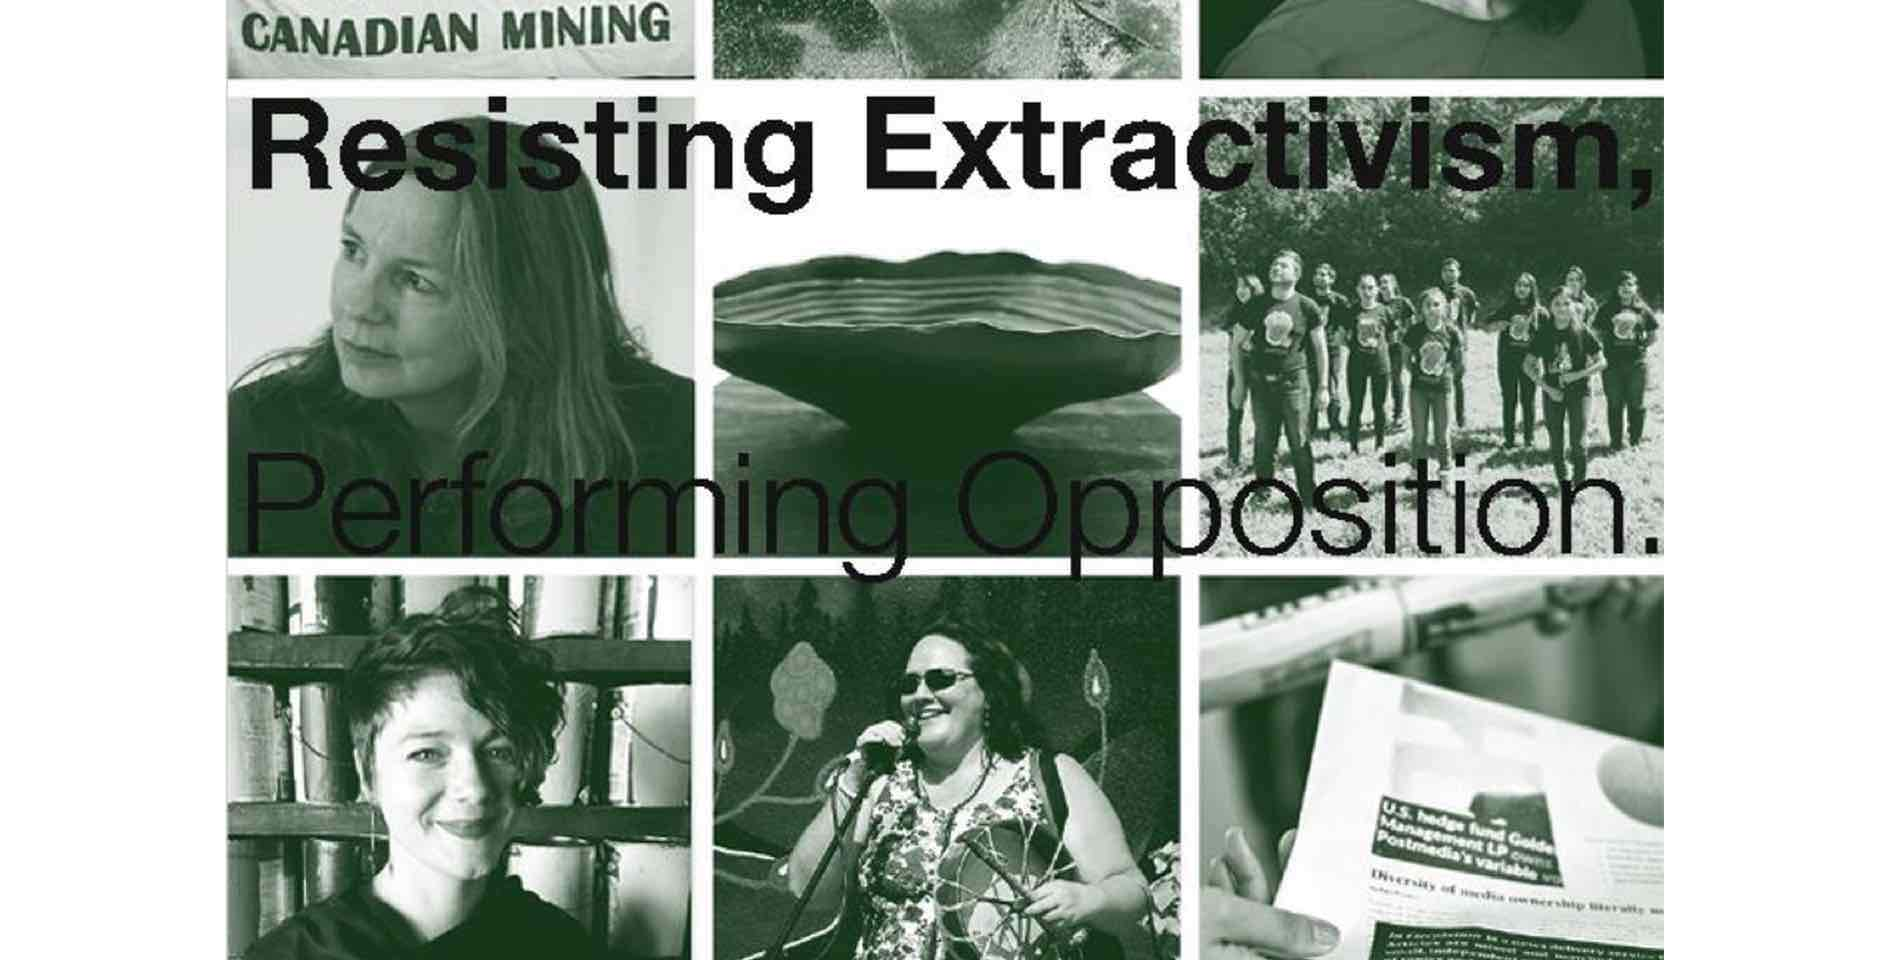 Resisting Extractivism, Performing Opposition